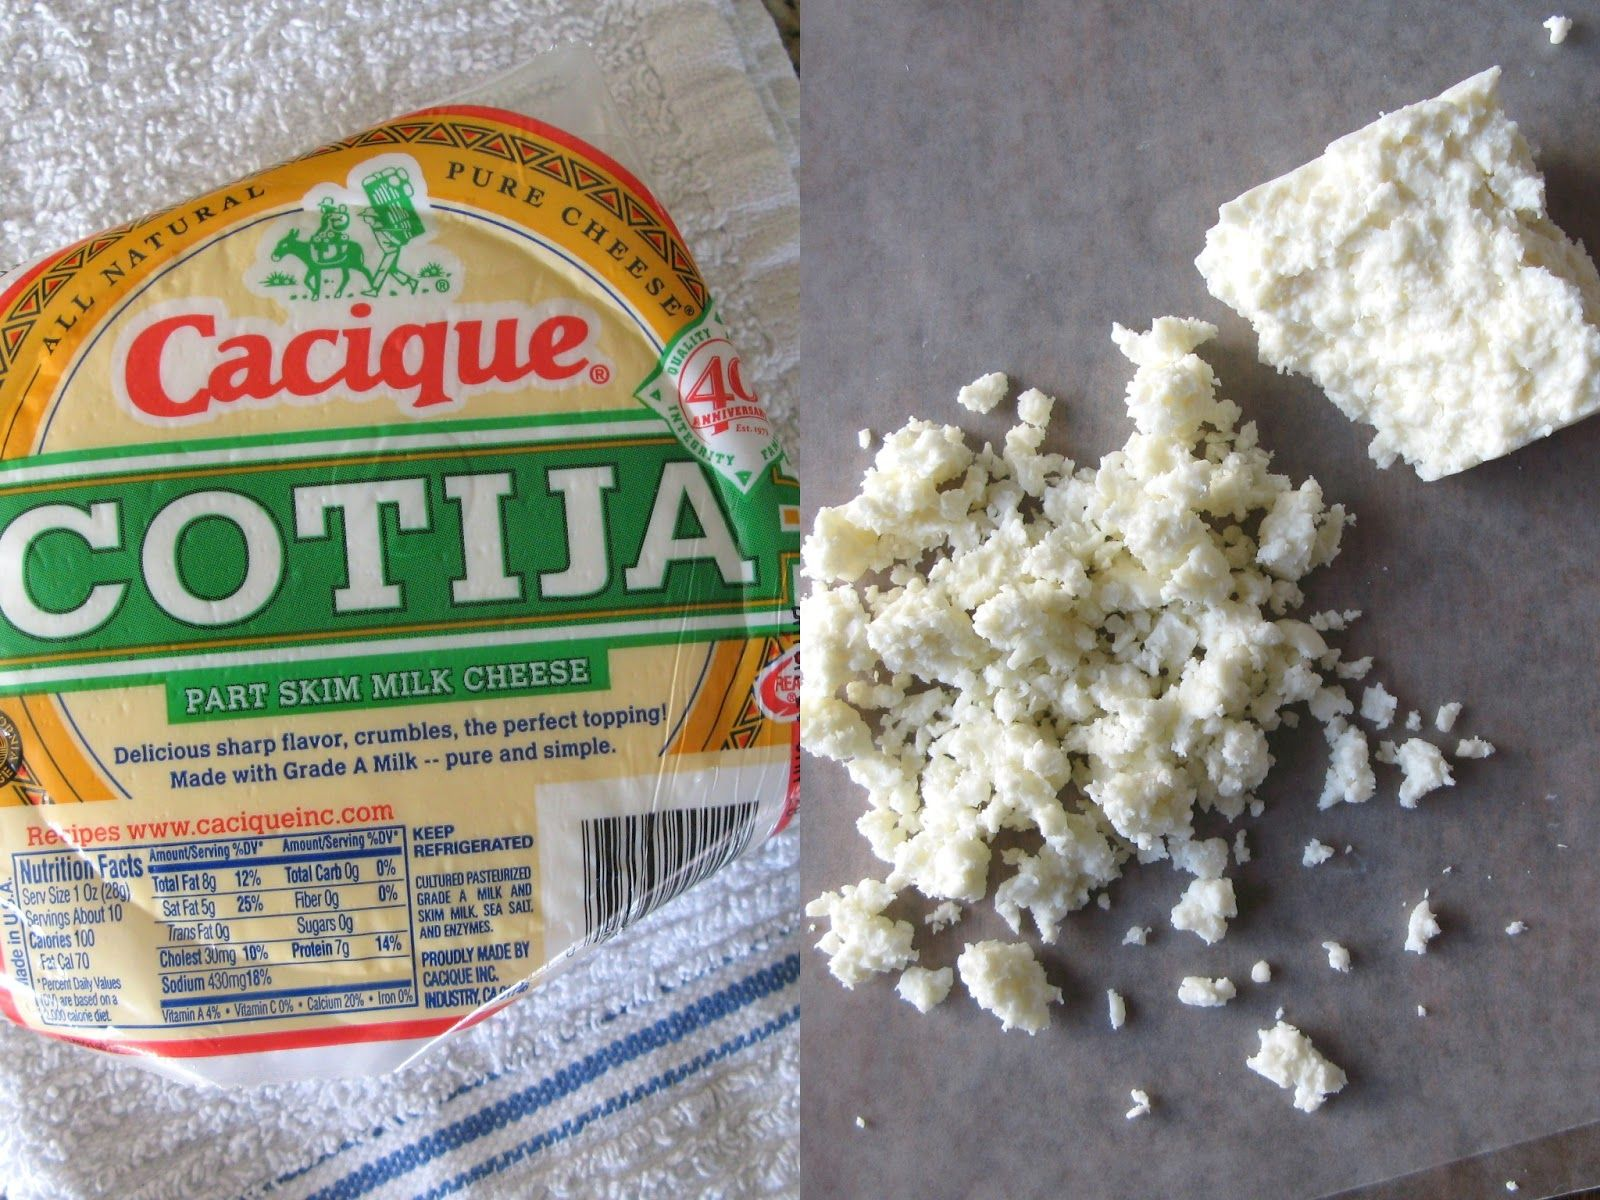 Pin By Kartch On Life Food Recipes Food Milk And Cheese Cotija Cheese